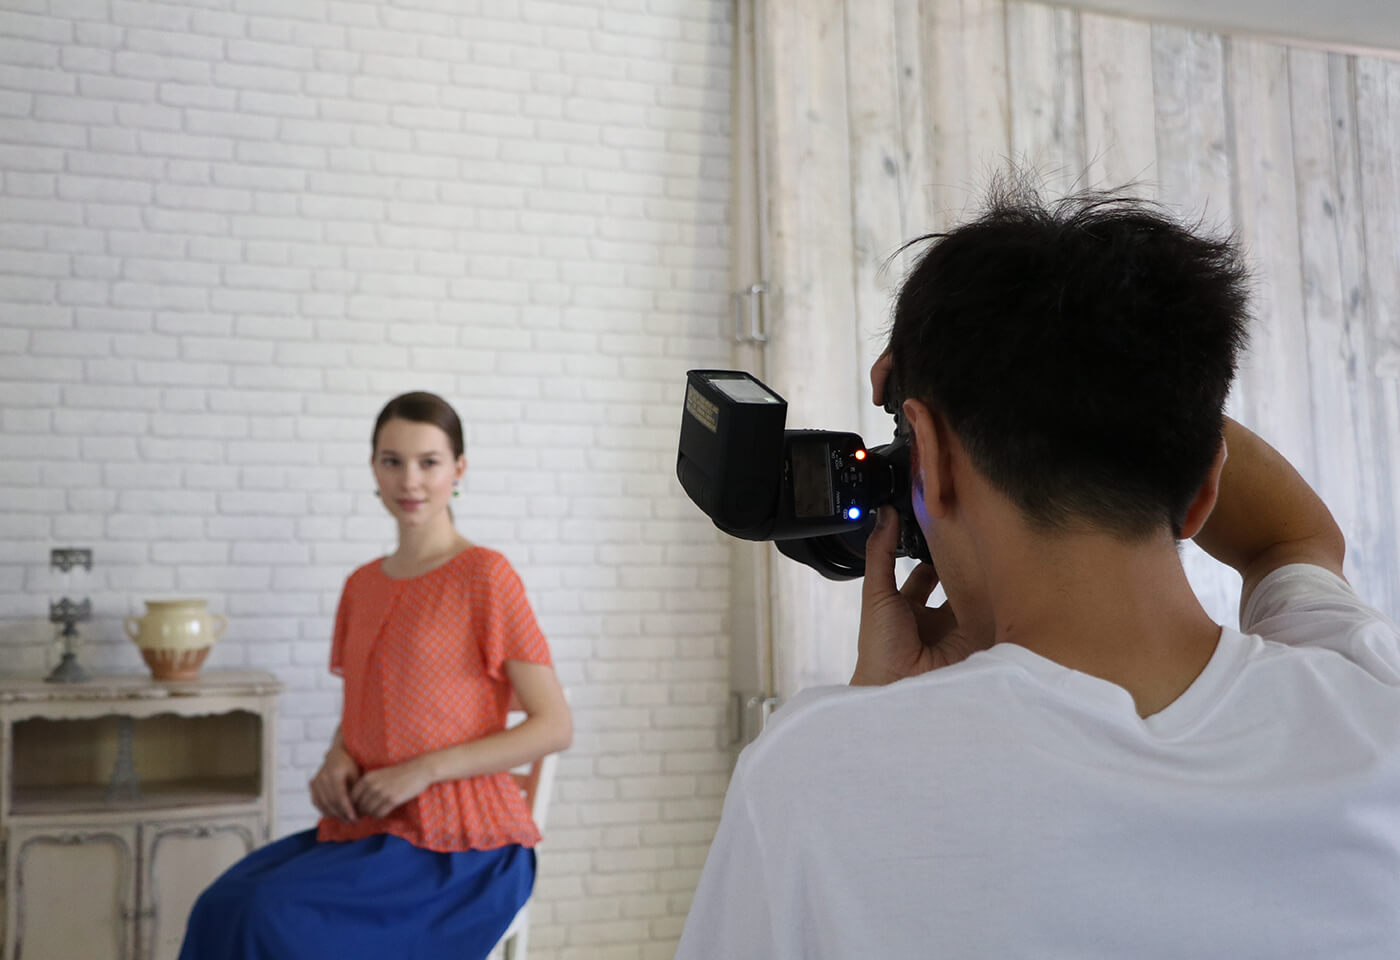 Image of photographer taking portrait with 470EX-AI Speedlite